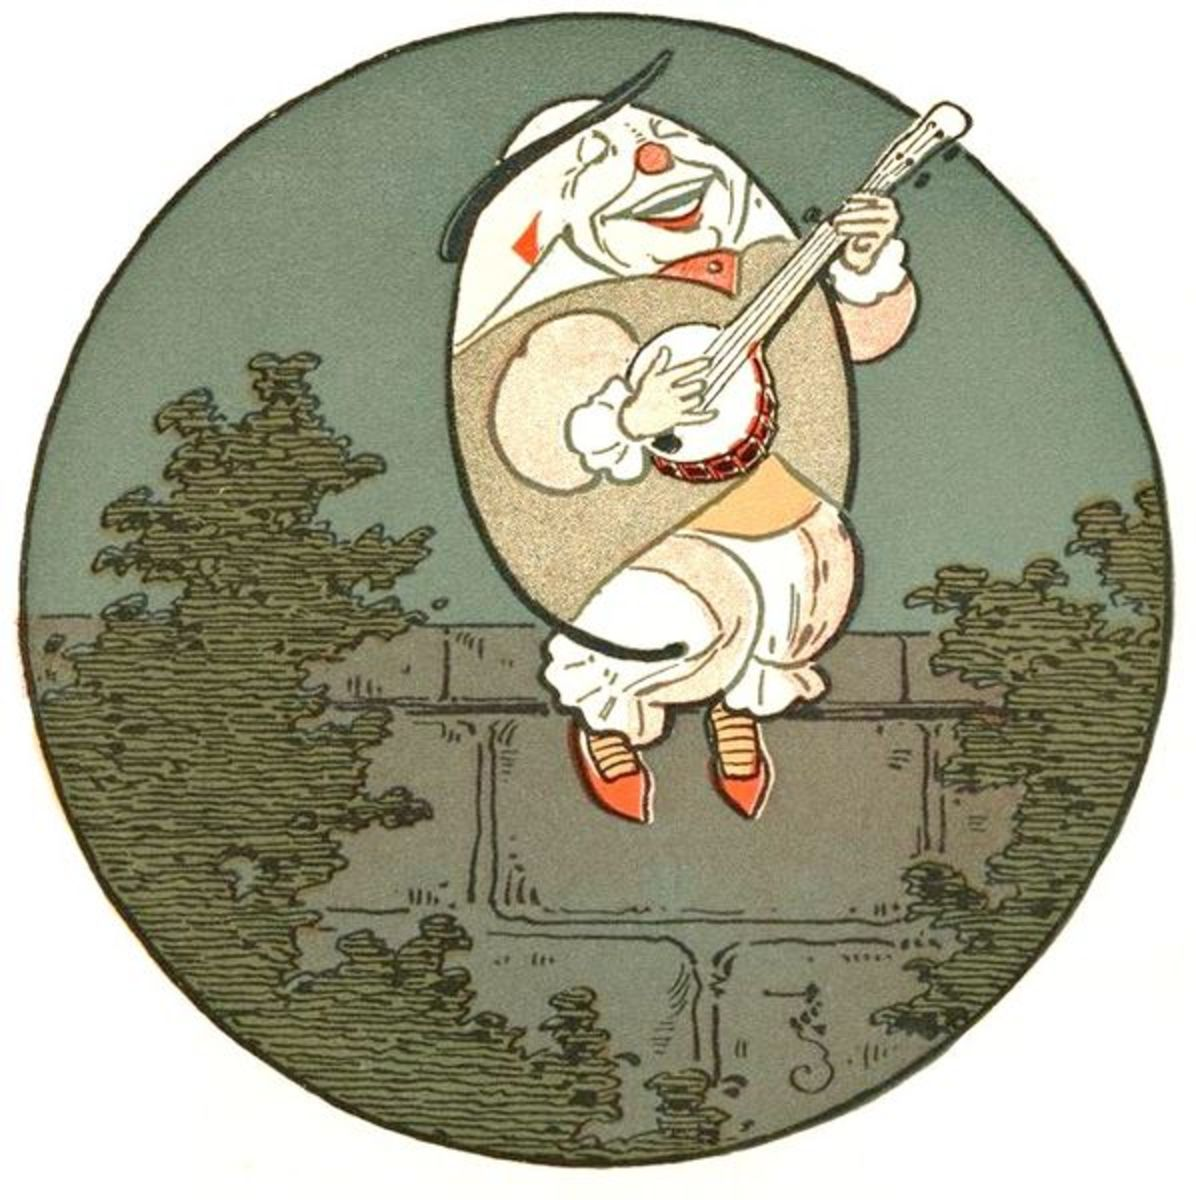 Humpty Dumpty is just one example of a couplet out of many that can be found in nursery rhymes.